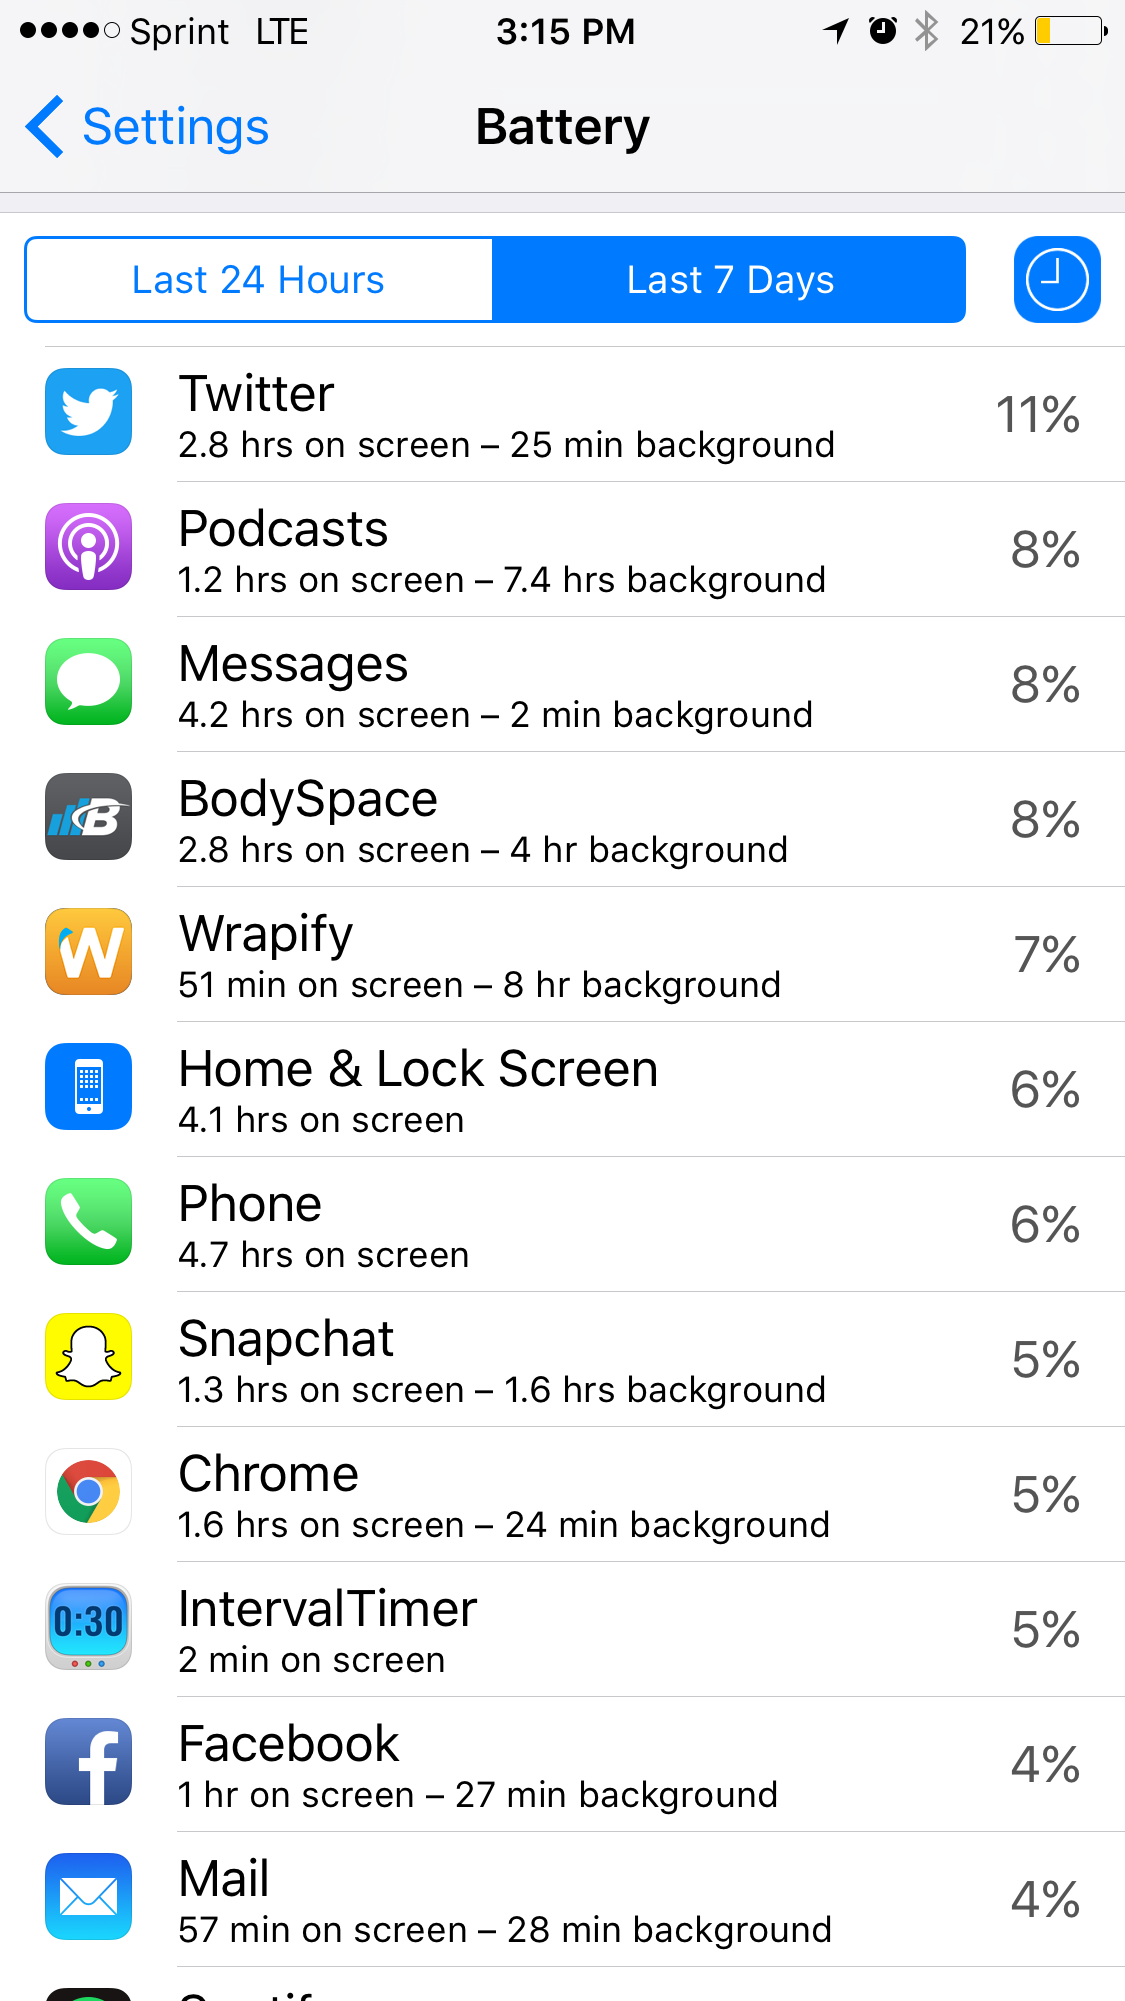 Battery Usage - Past 7 days